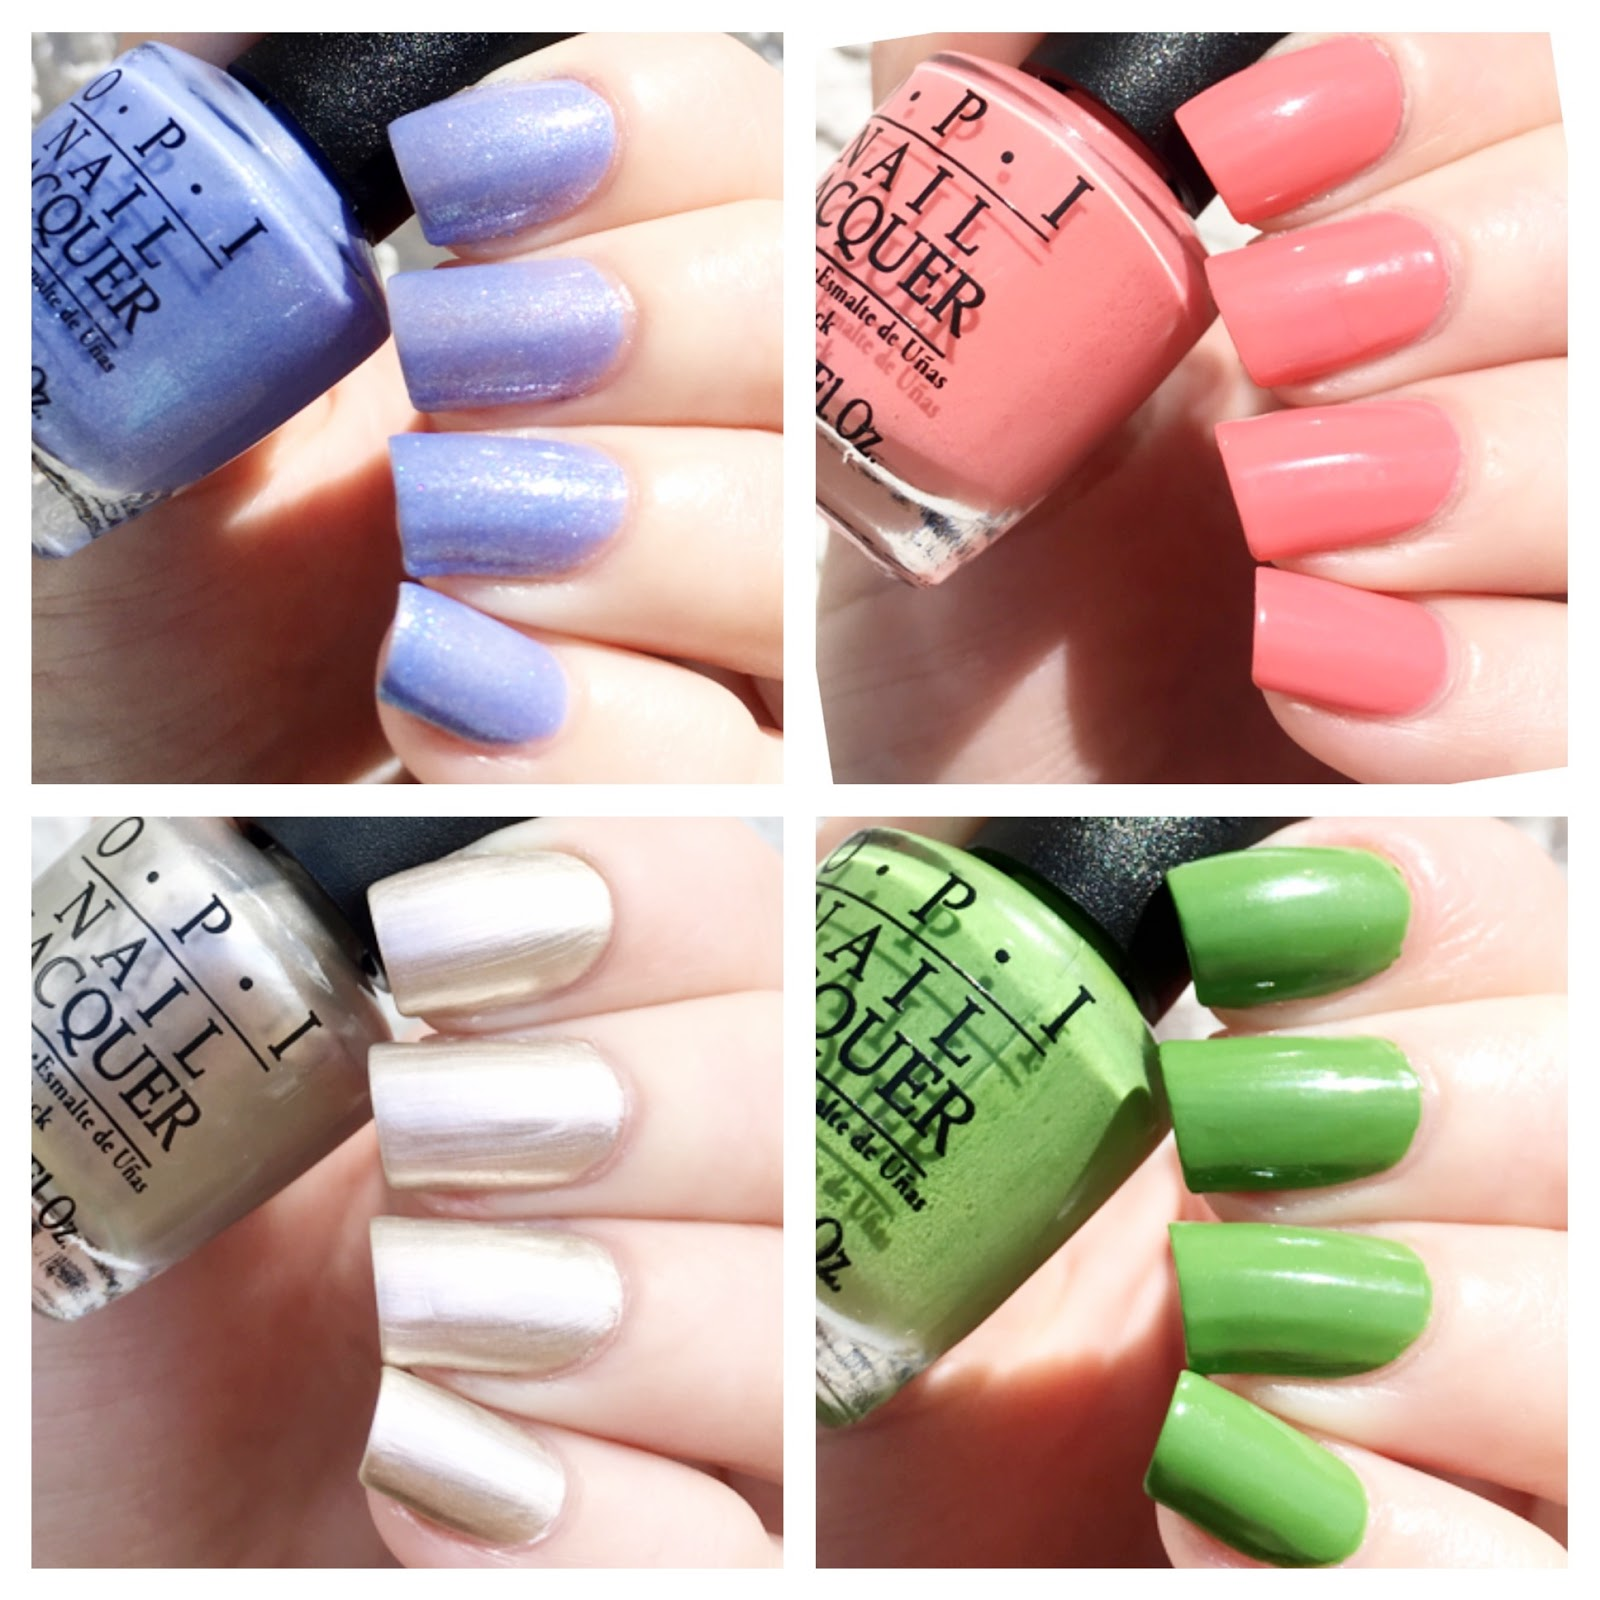 cat eyes & skinny jeans: OPI New Orleans 4PC Mini Set Swatches + Review